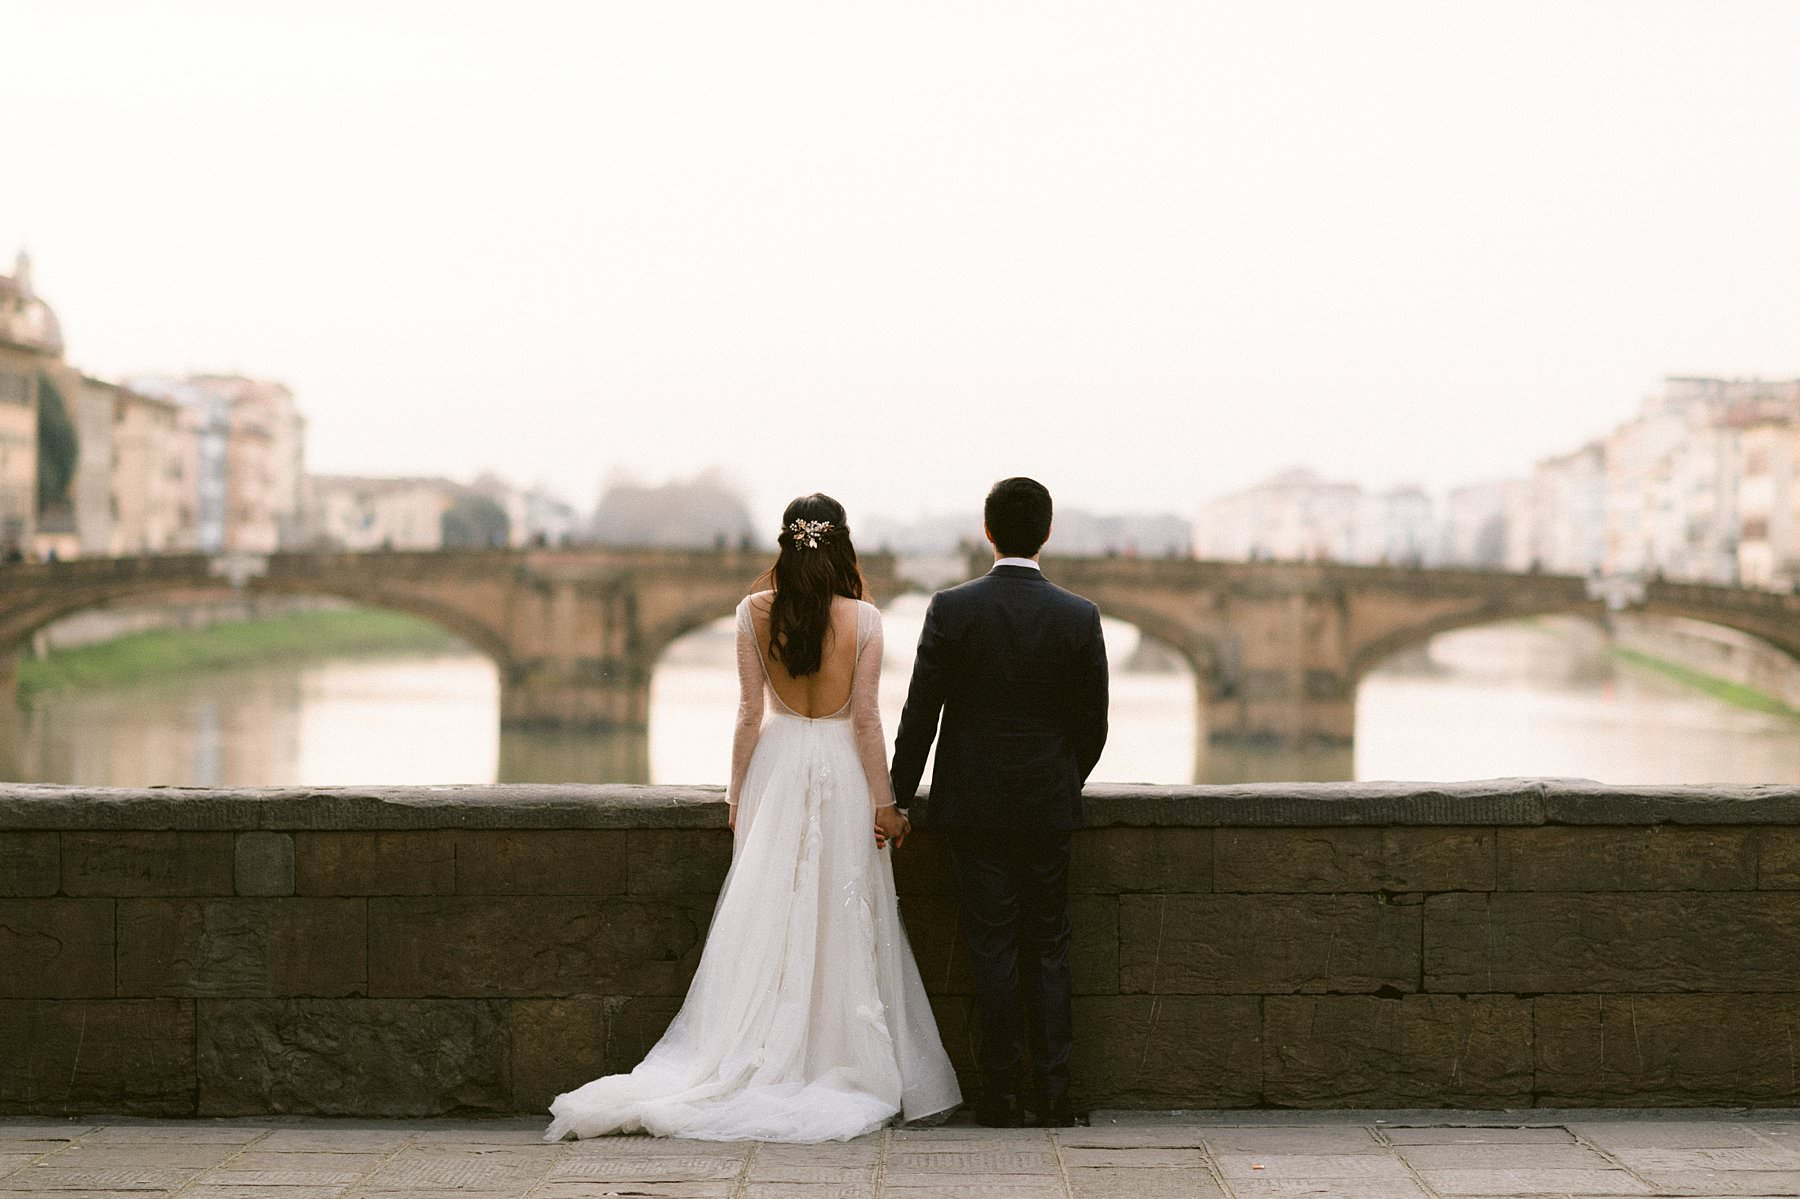 Romantic couple photos for a special honeymoon in Florence